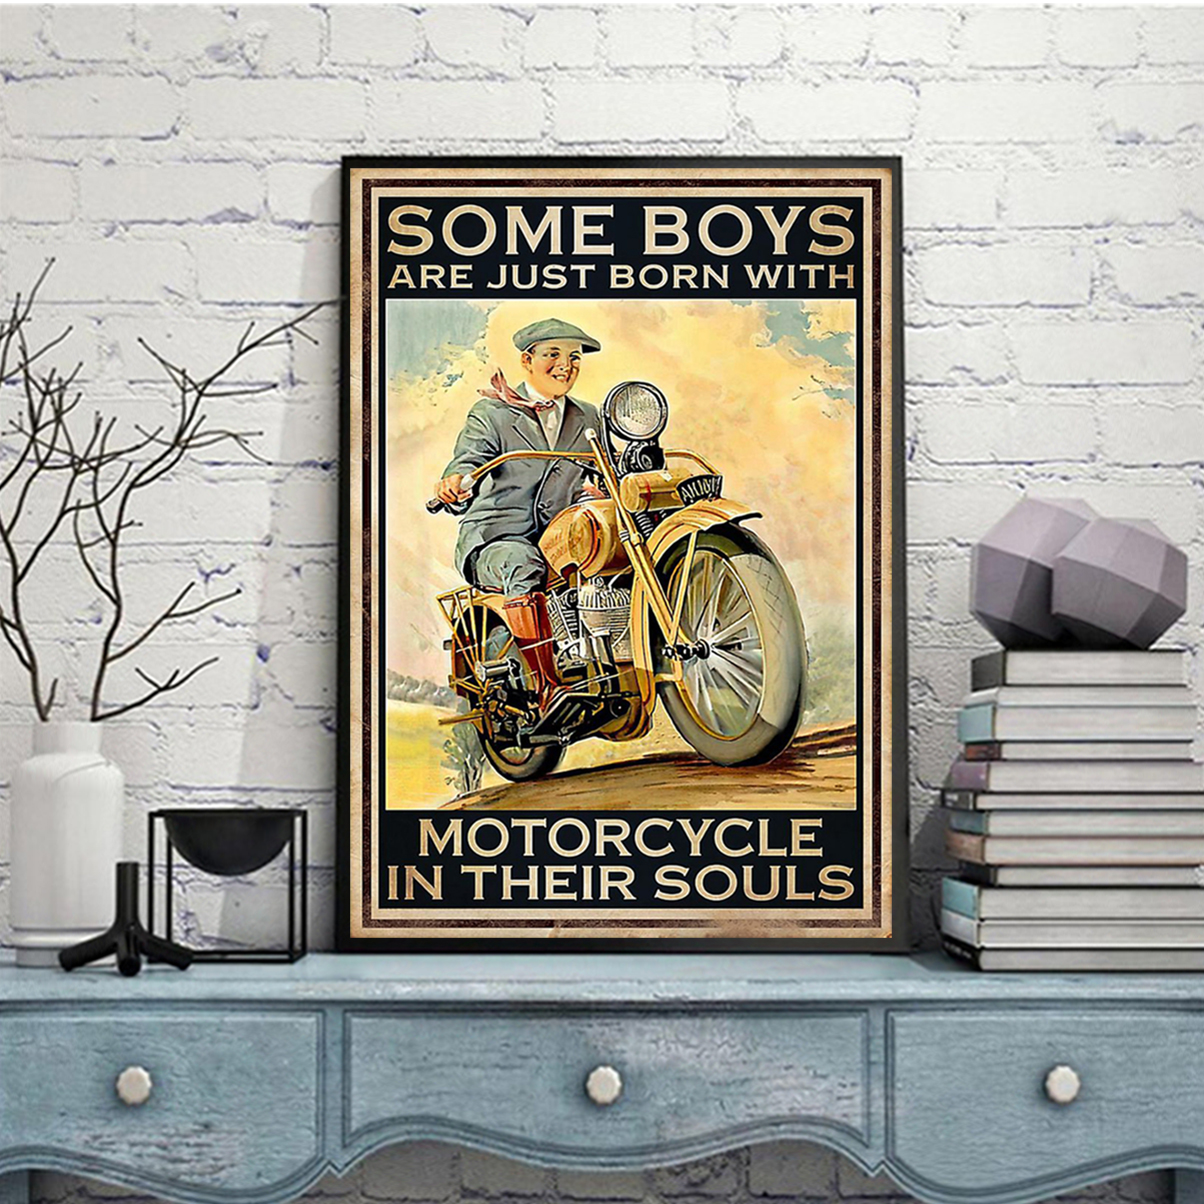 Some boys are just born with motorcycle in their souls poster A1